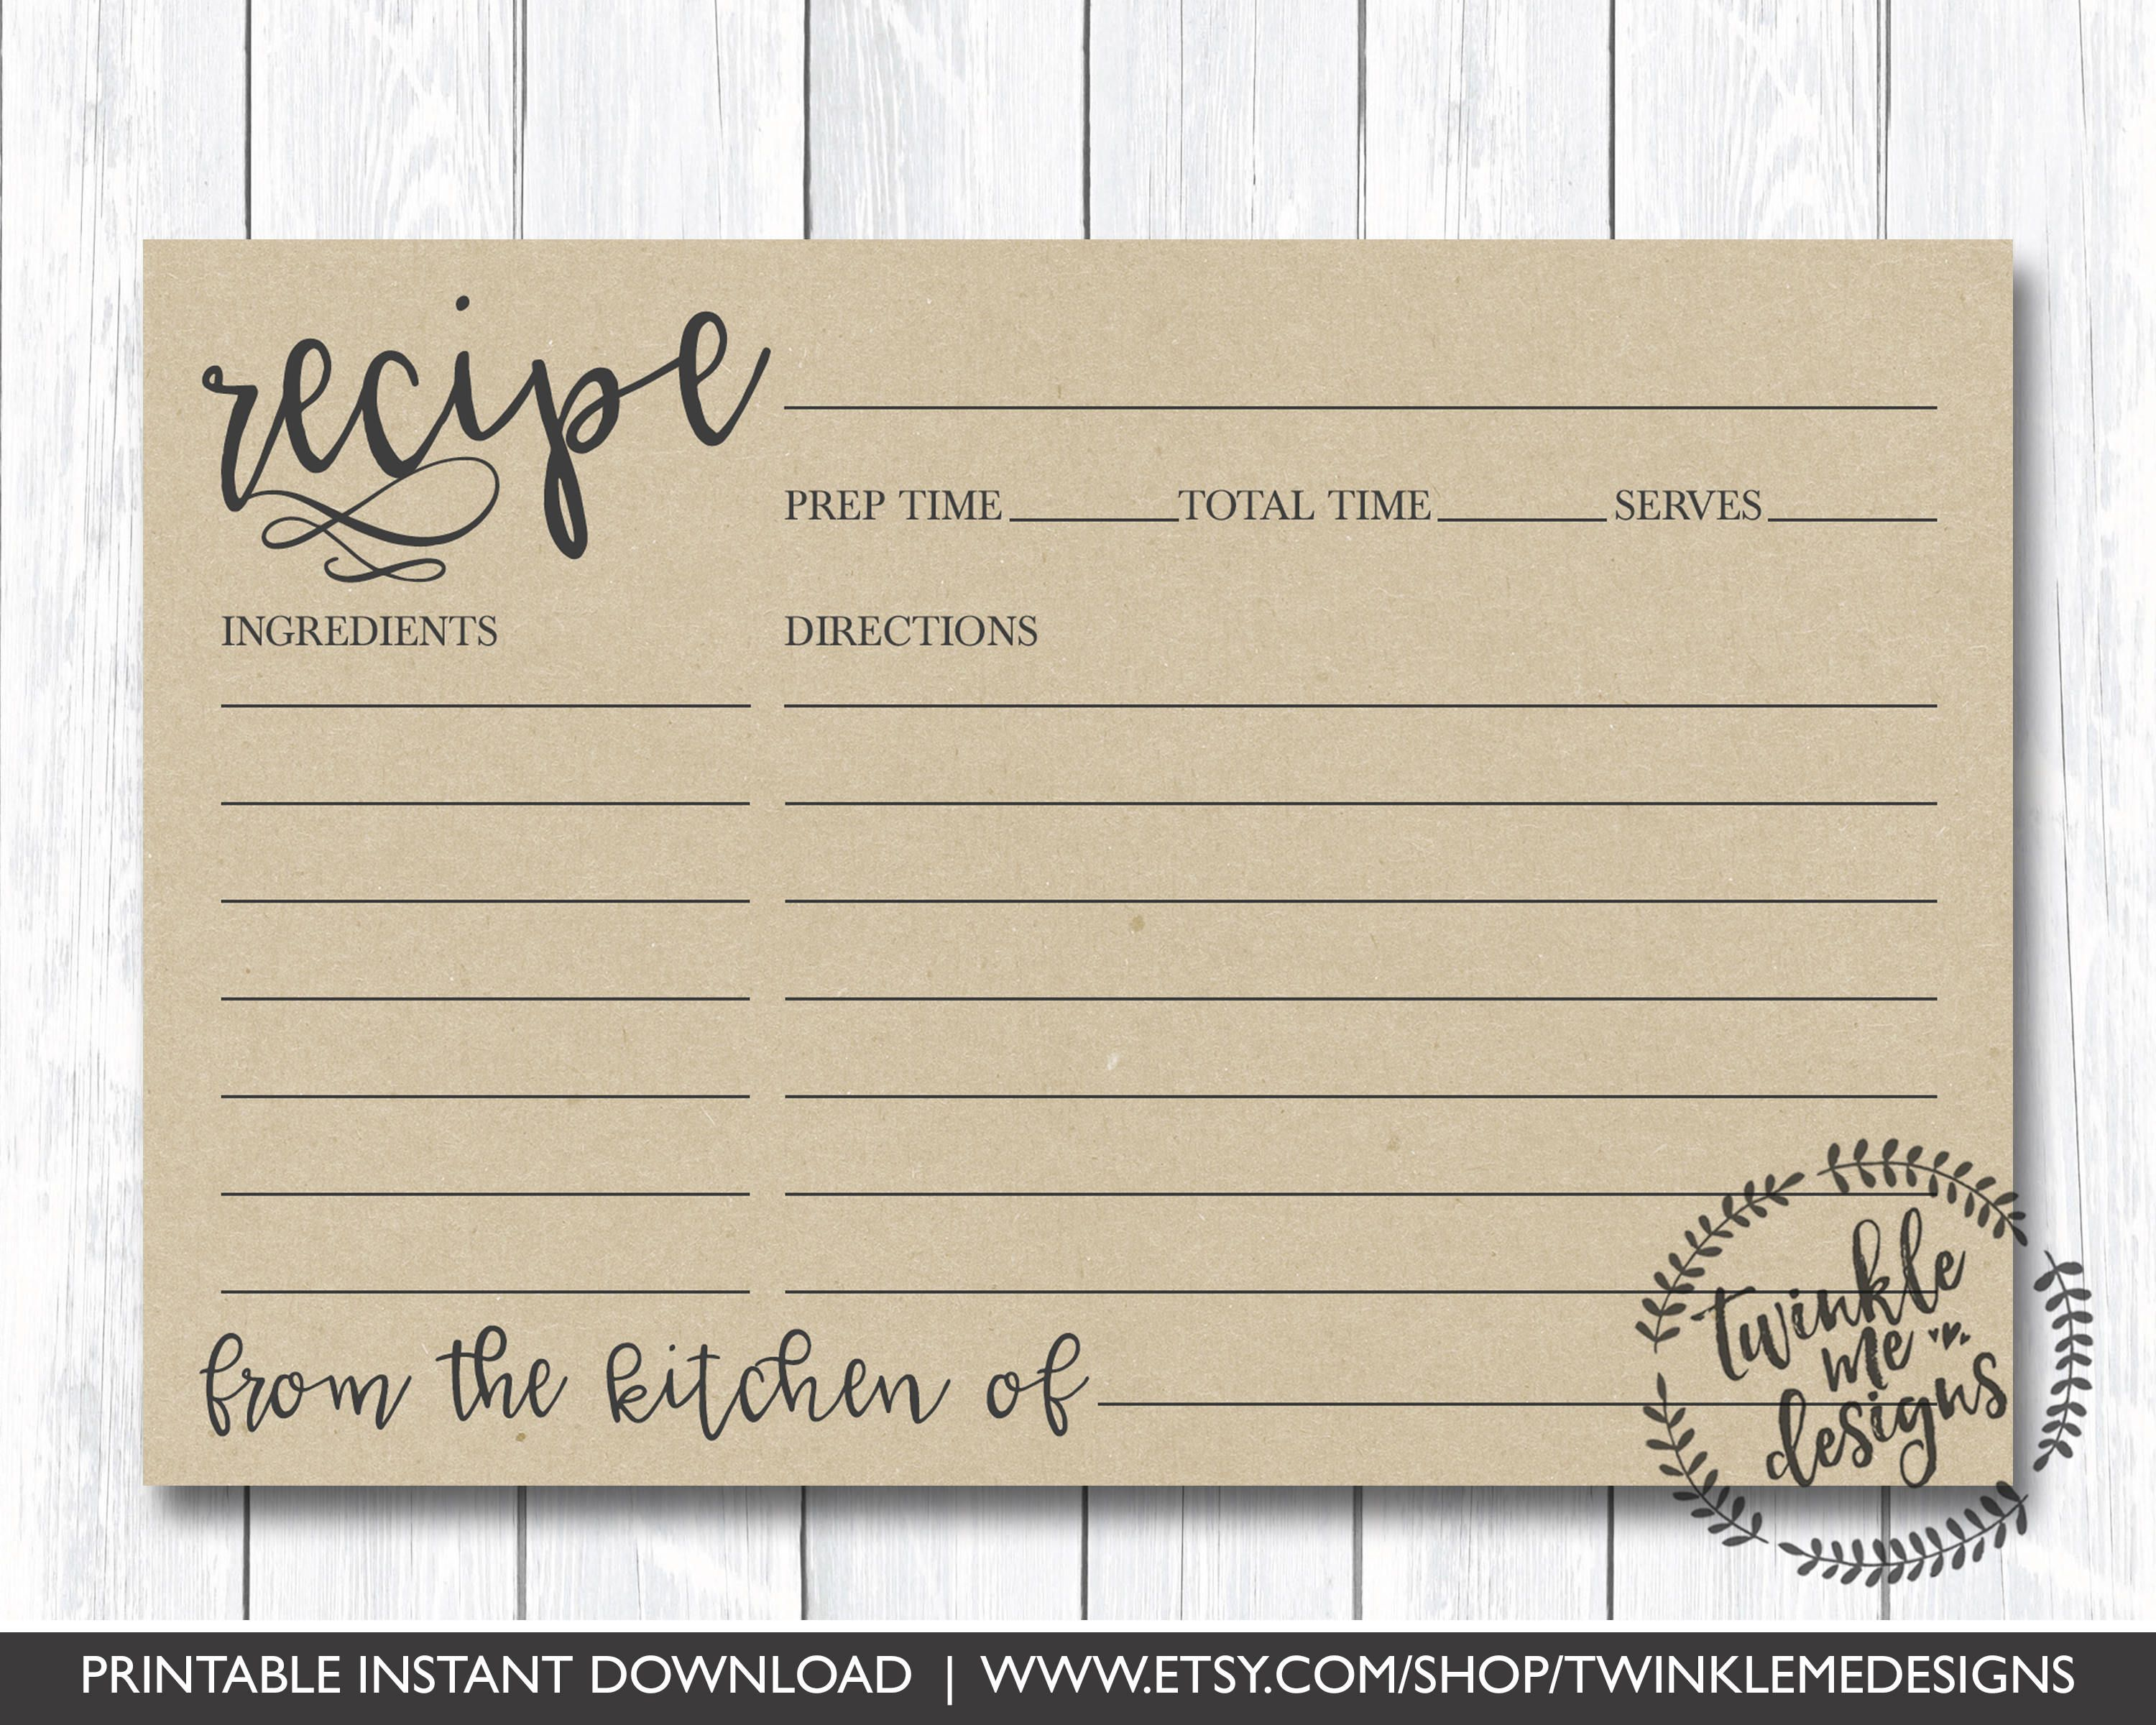 Recipe Card Printable Printable Recipe Card Diy Recipe Cards 4x6 Recipe Card Bridal Shower Recipe Card Pdf Instant Download Kraft Diy In 2021 Bridal Shower Recipes Cards Diy Recipe Cards Recipe